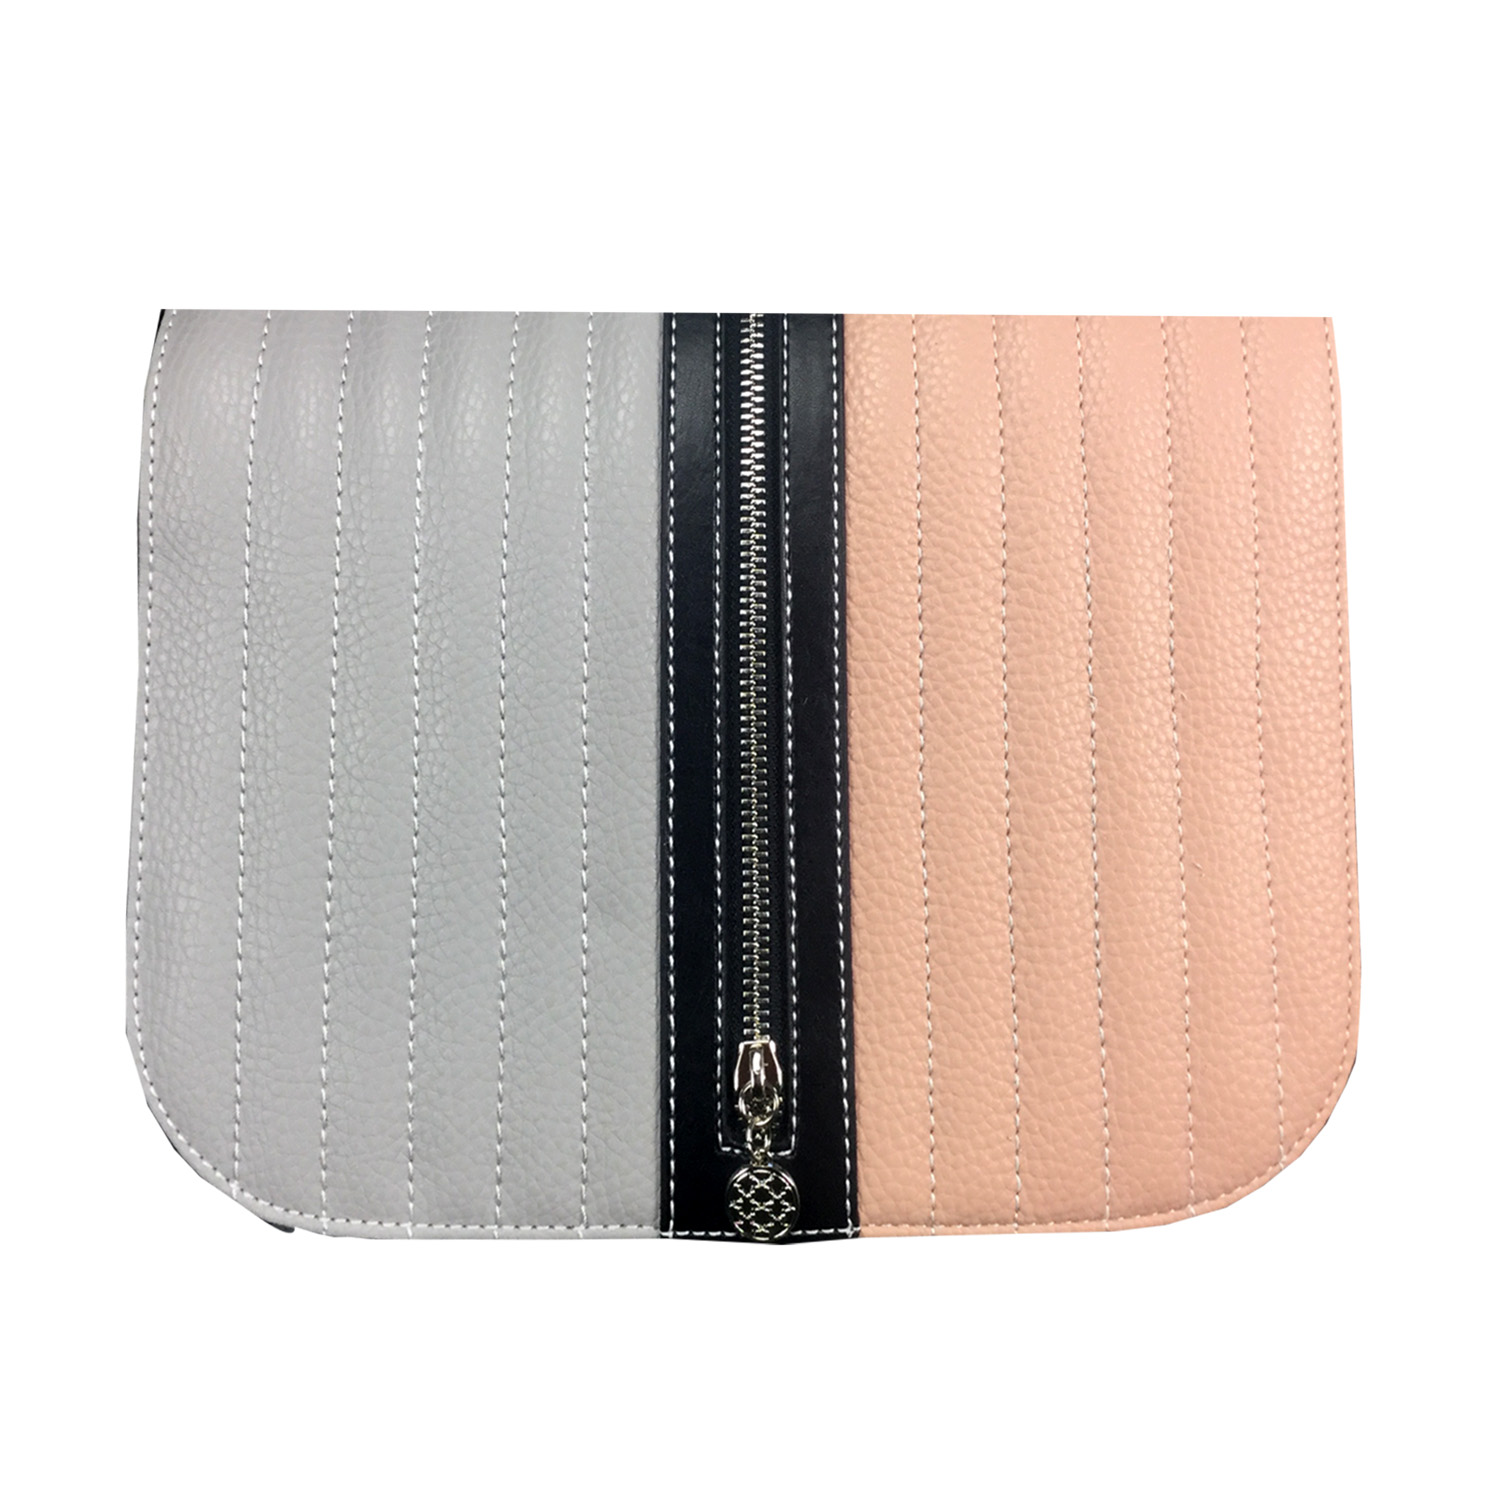 Delieta Wechseldesign Soft Bag Aignes